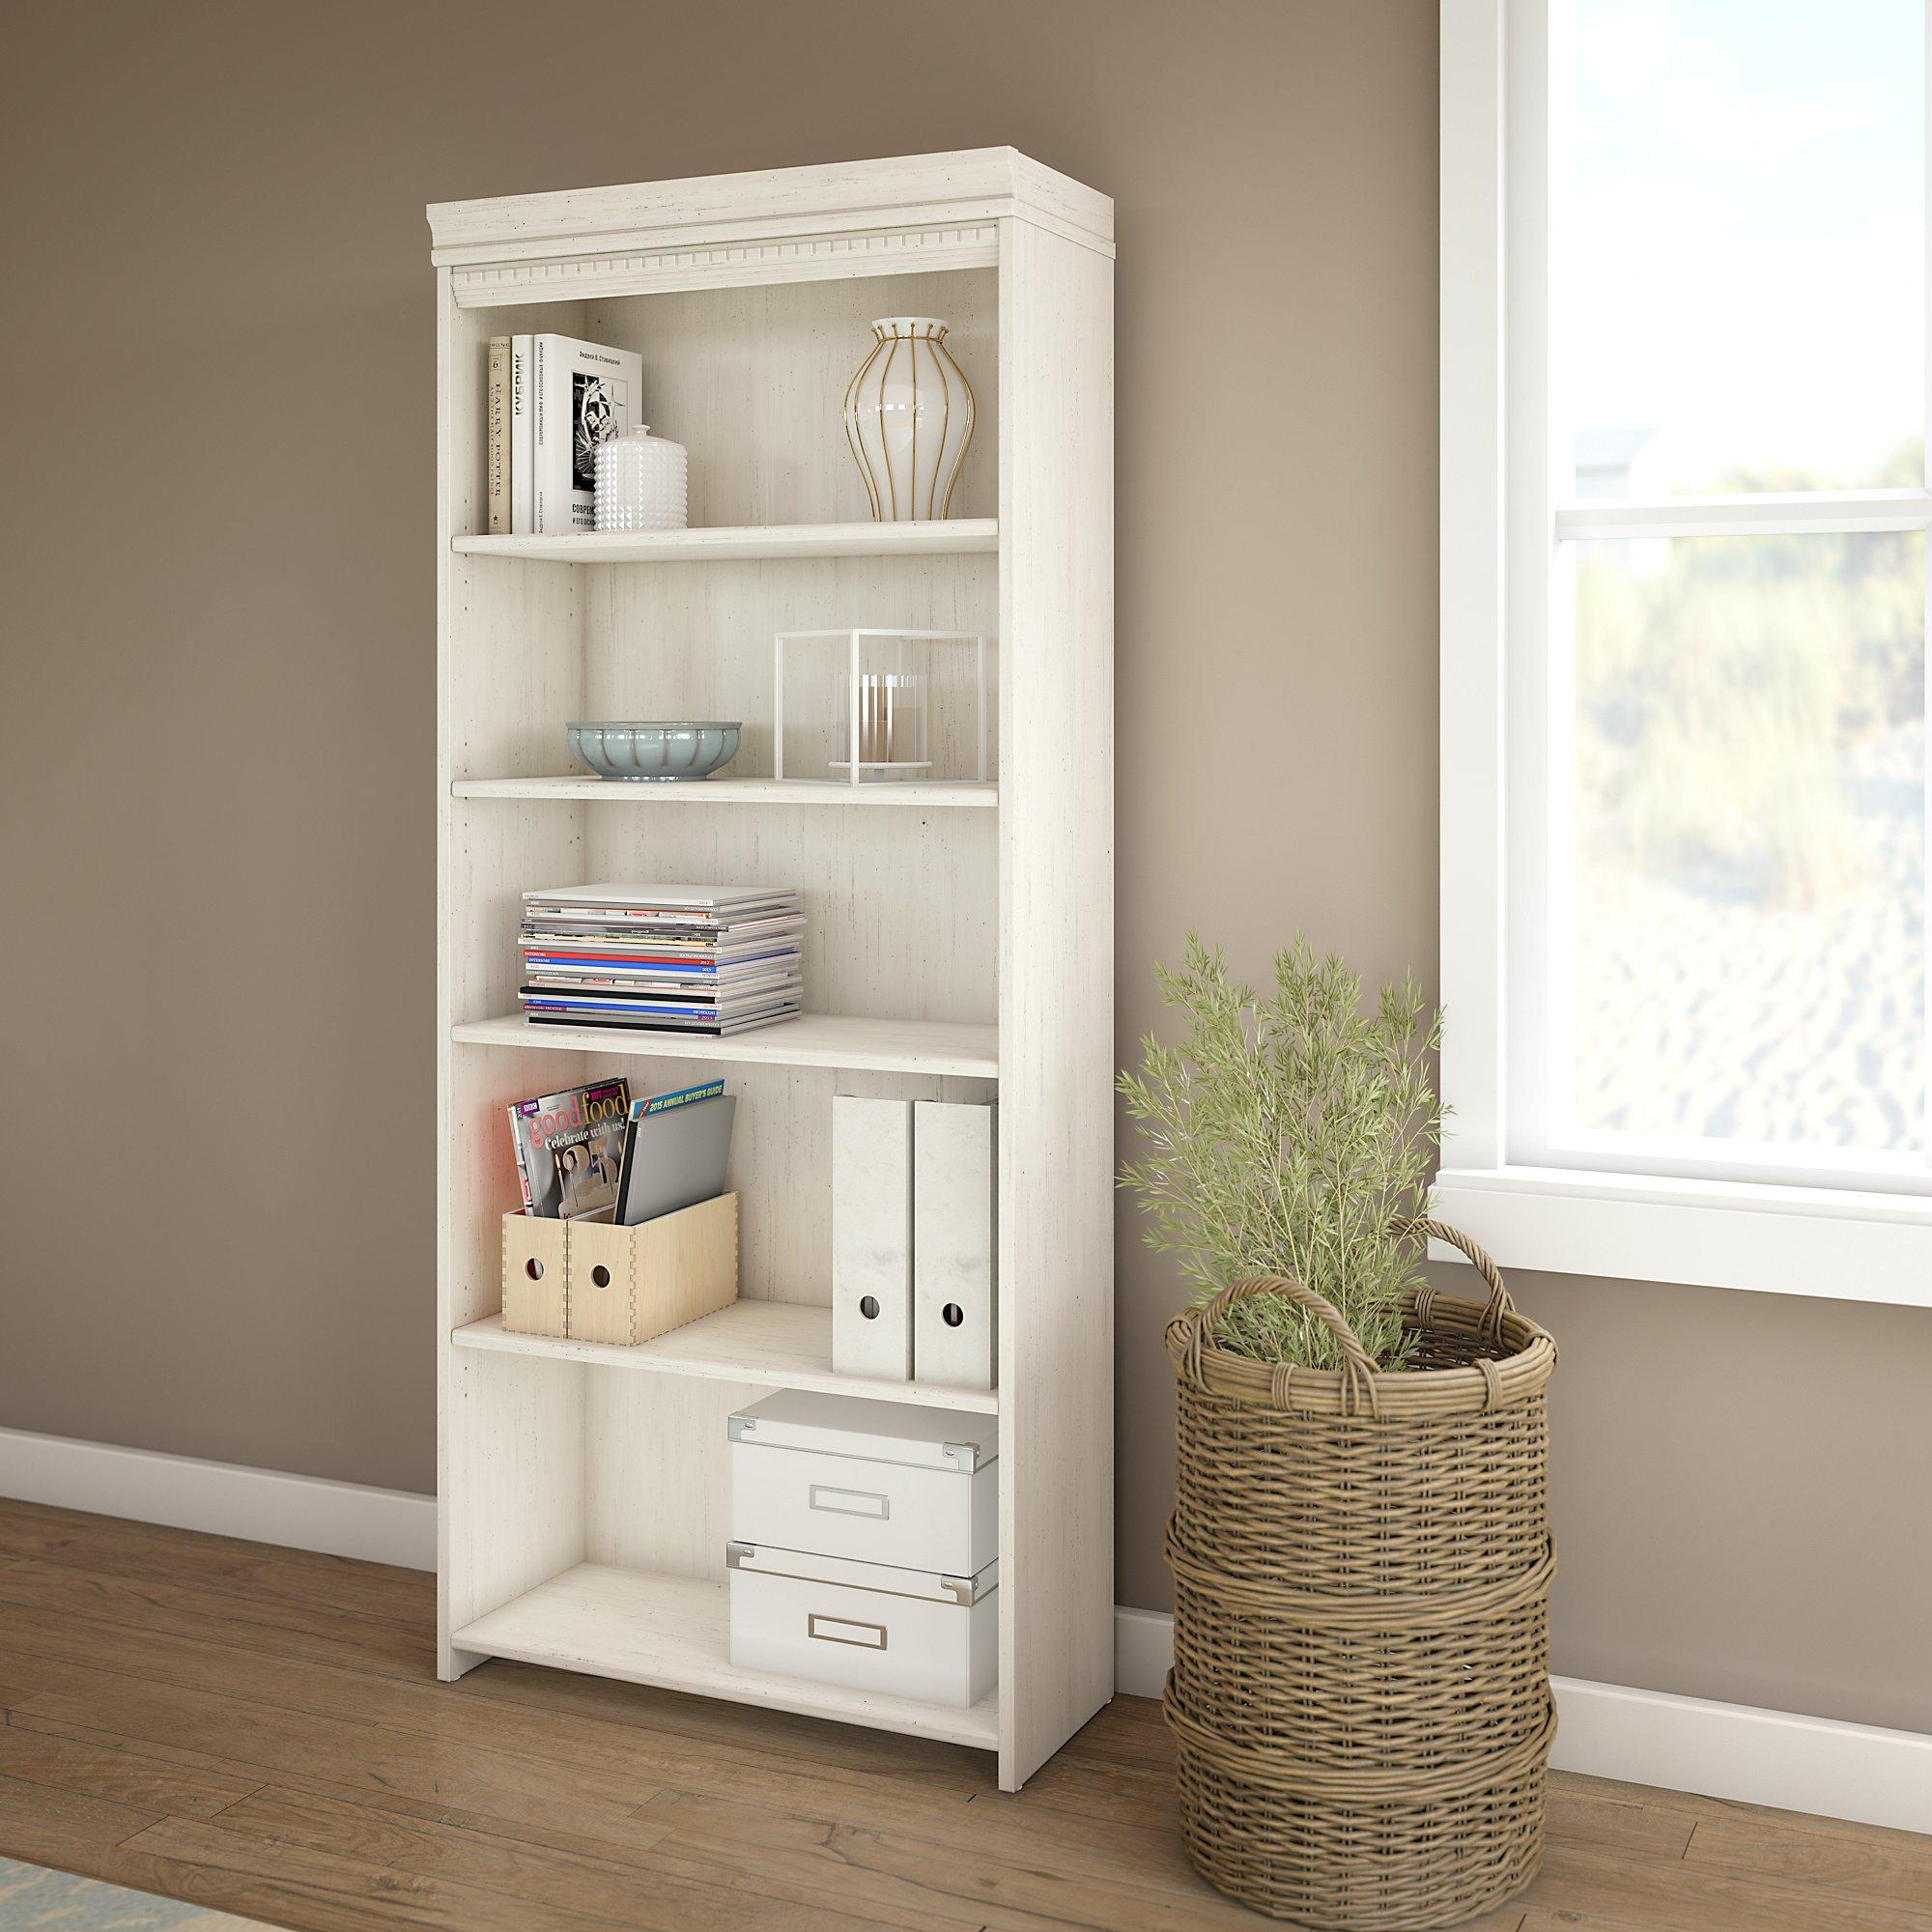 White Kitchen Shelf: Amazon.com: Fairview 5 Shelf Bookcase In Antique White